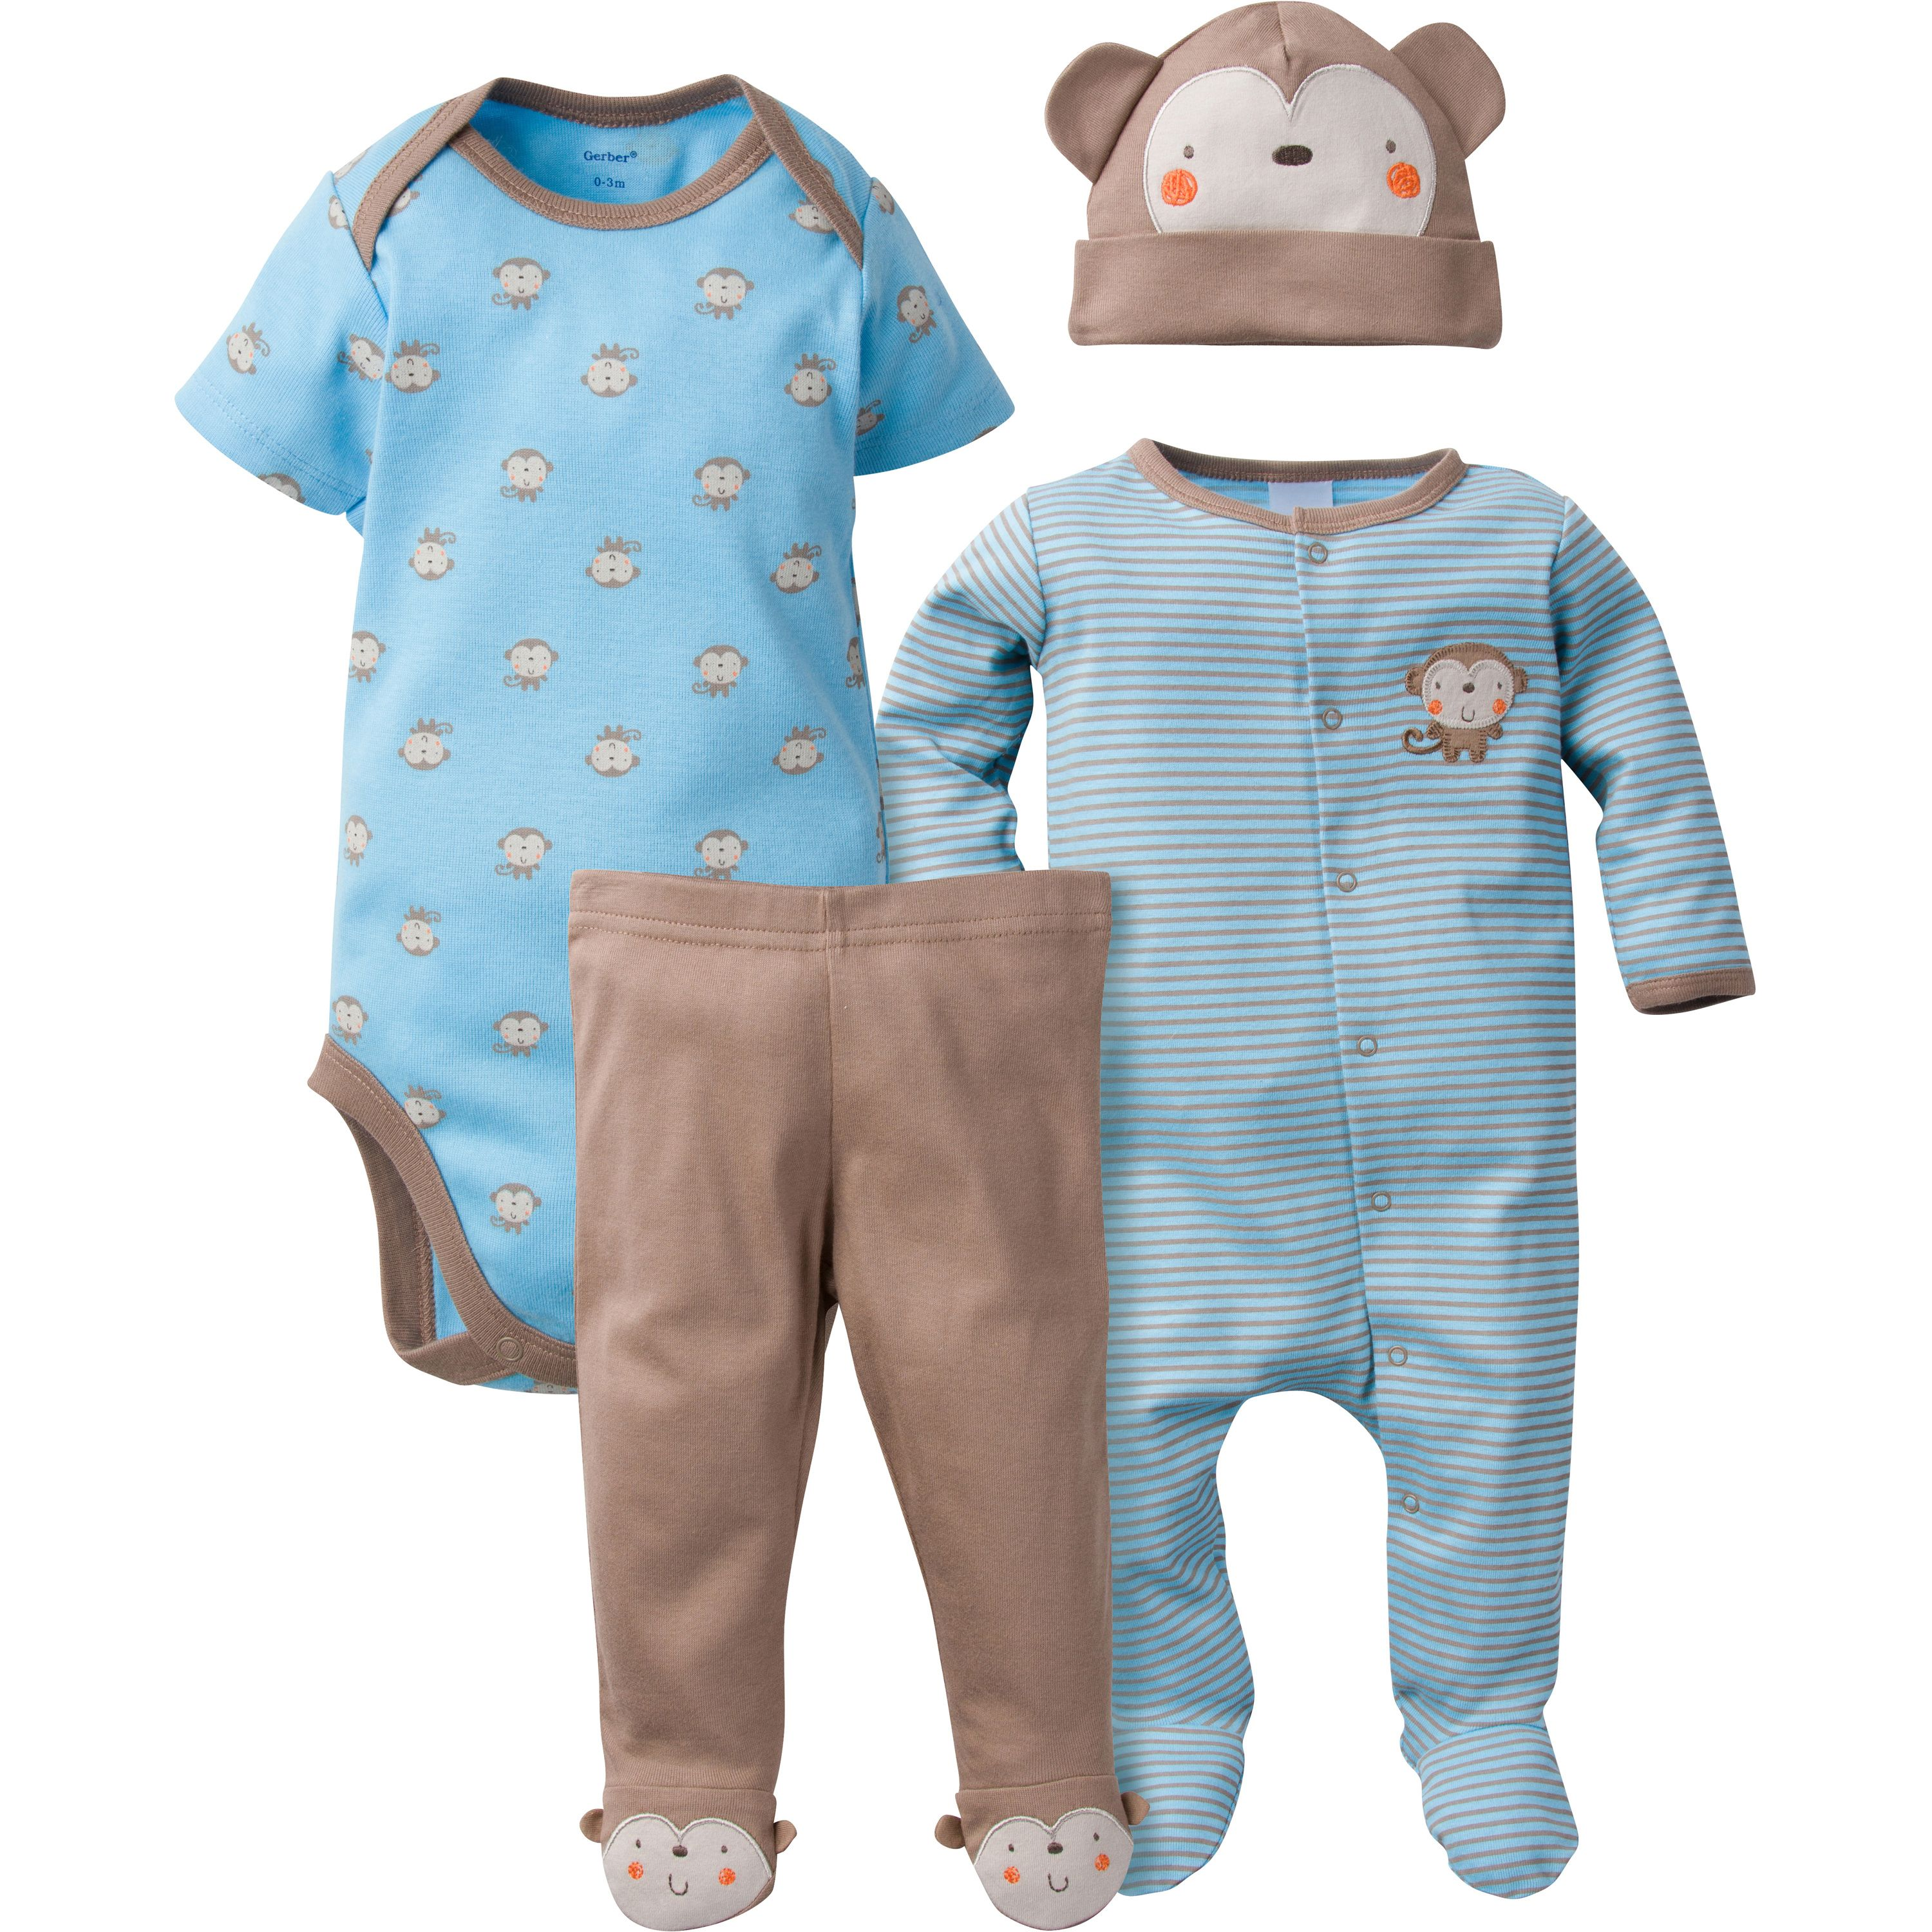 Gerber Newborn Baby Boy Sleep N' Play, Onesies Bodysuit, Pant & Cap, 4pc Set